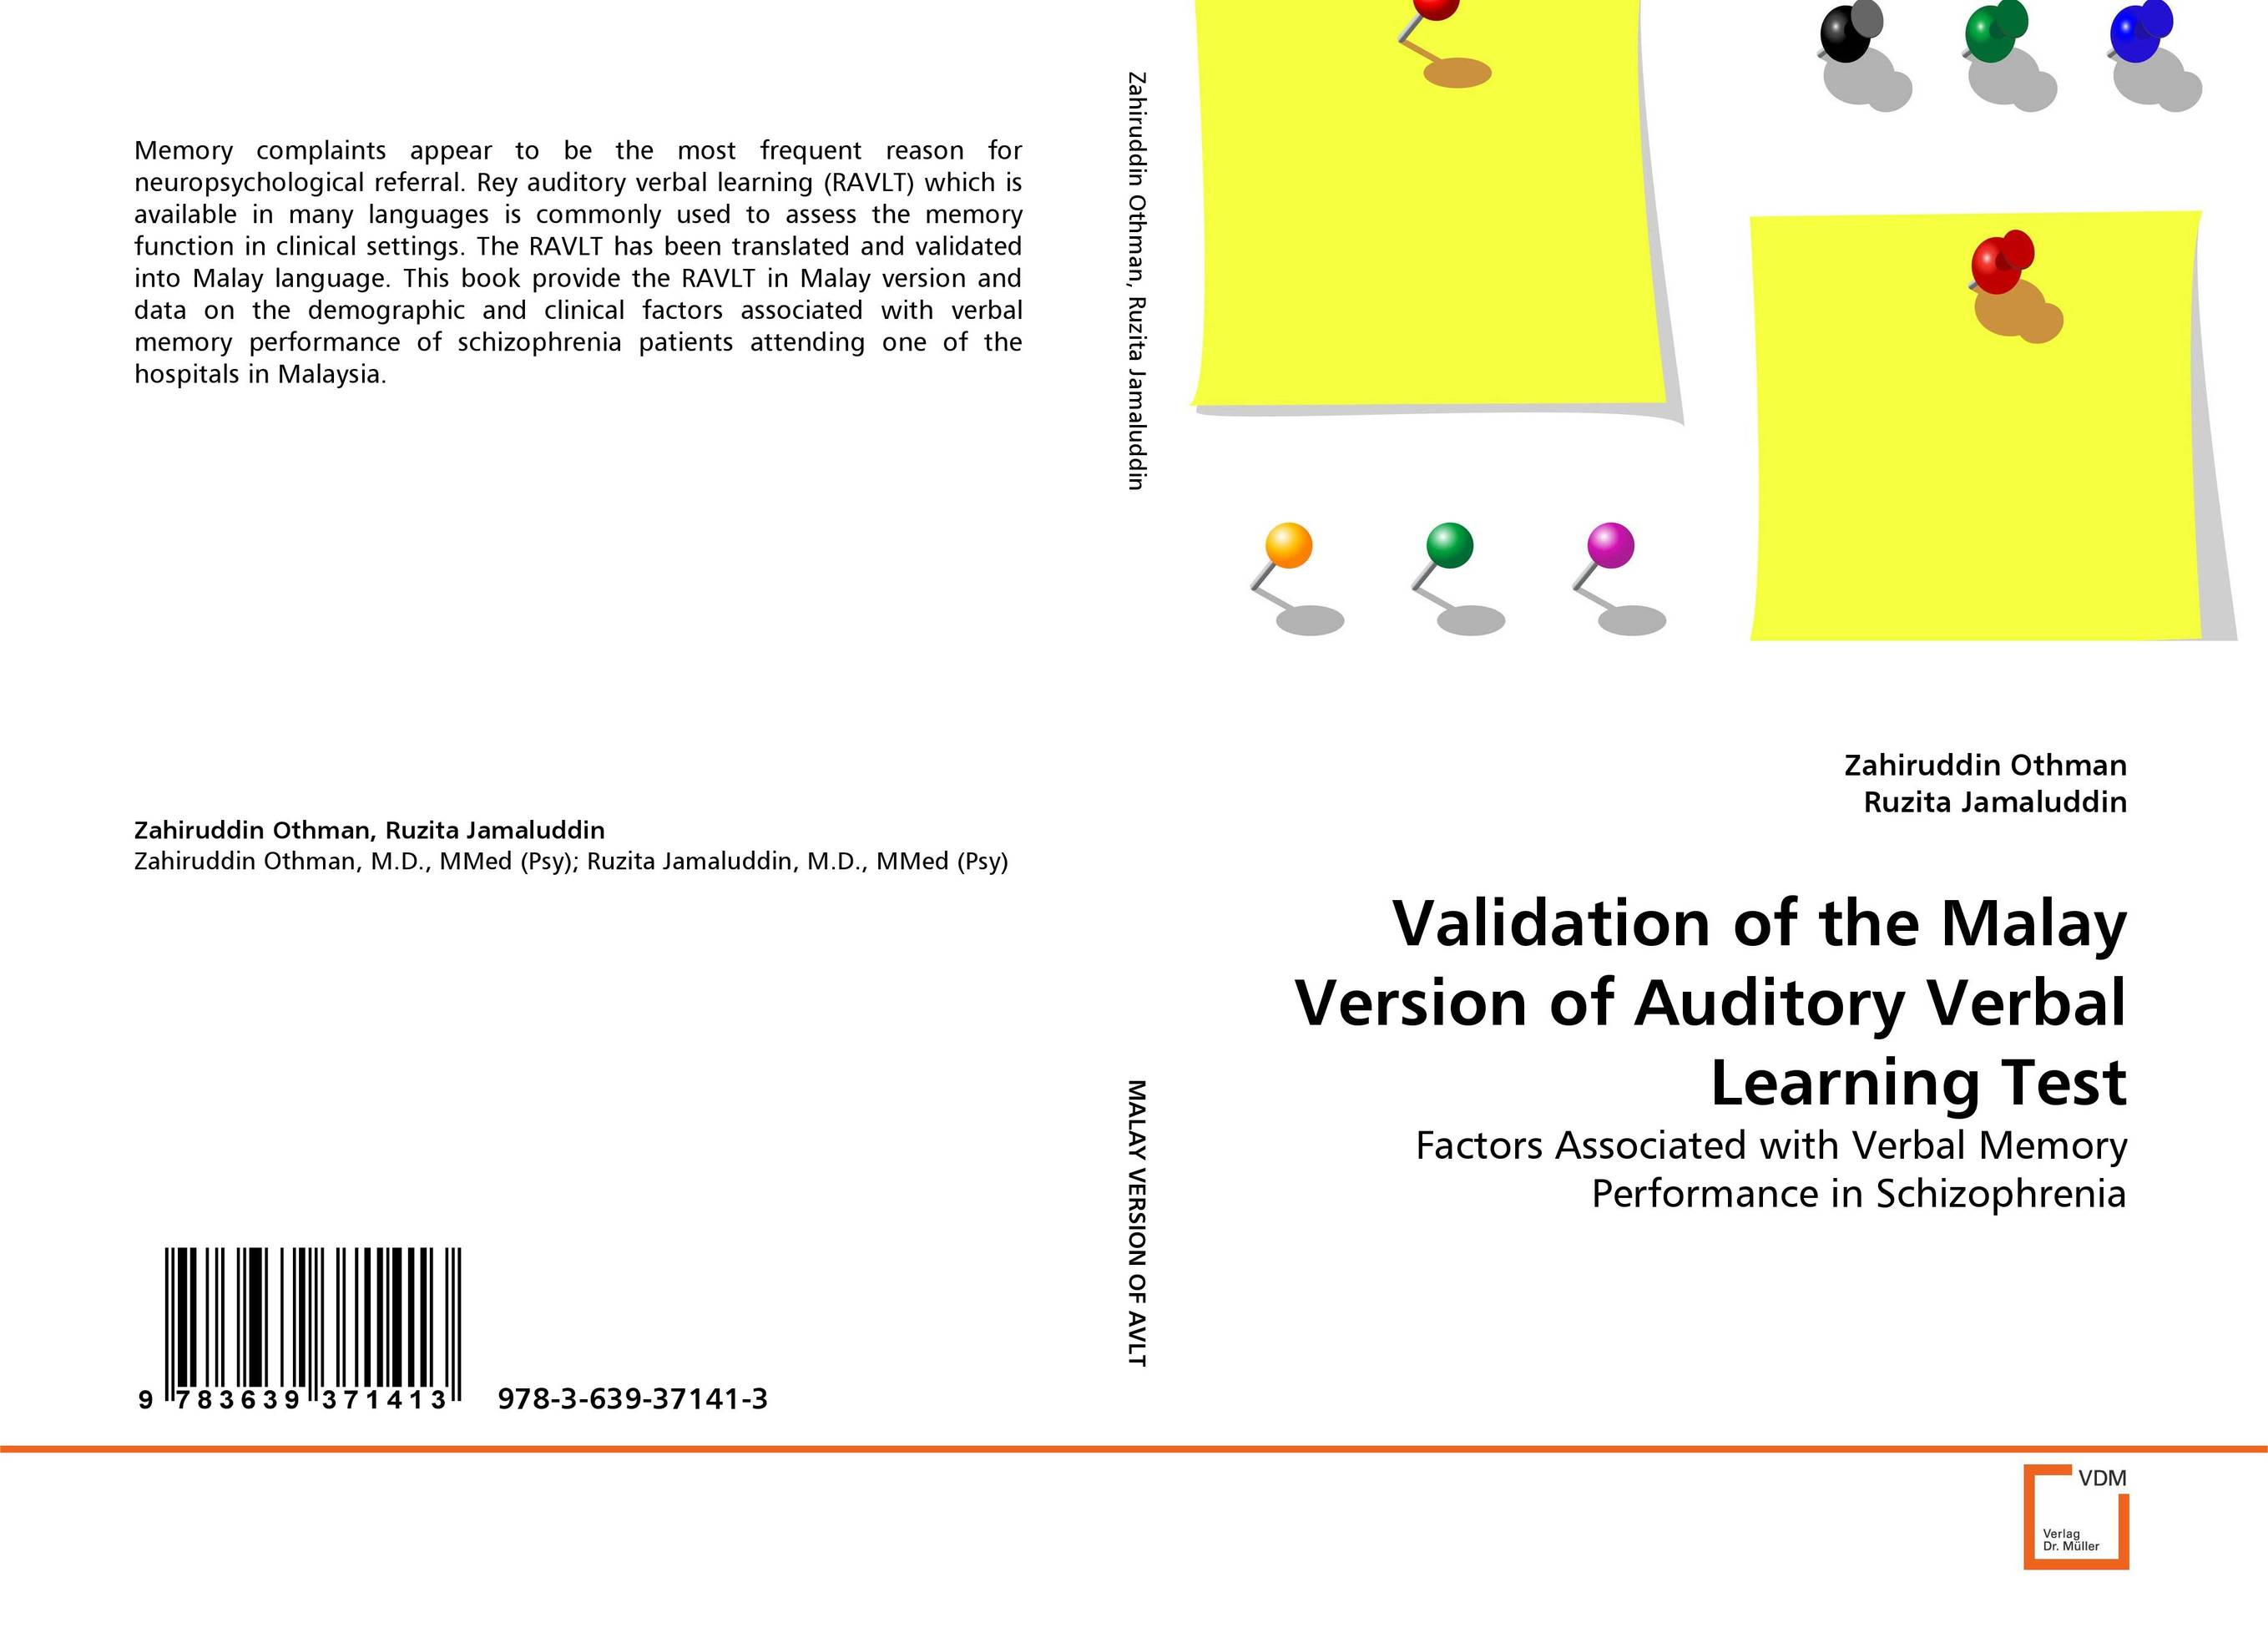 Validation of the Malay Version of Auditory Verbal Learning Test